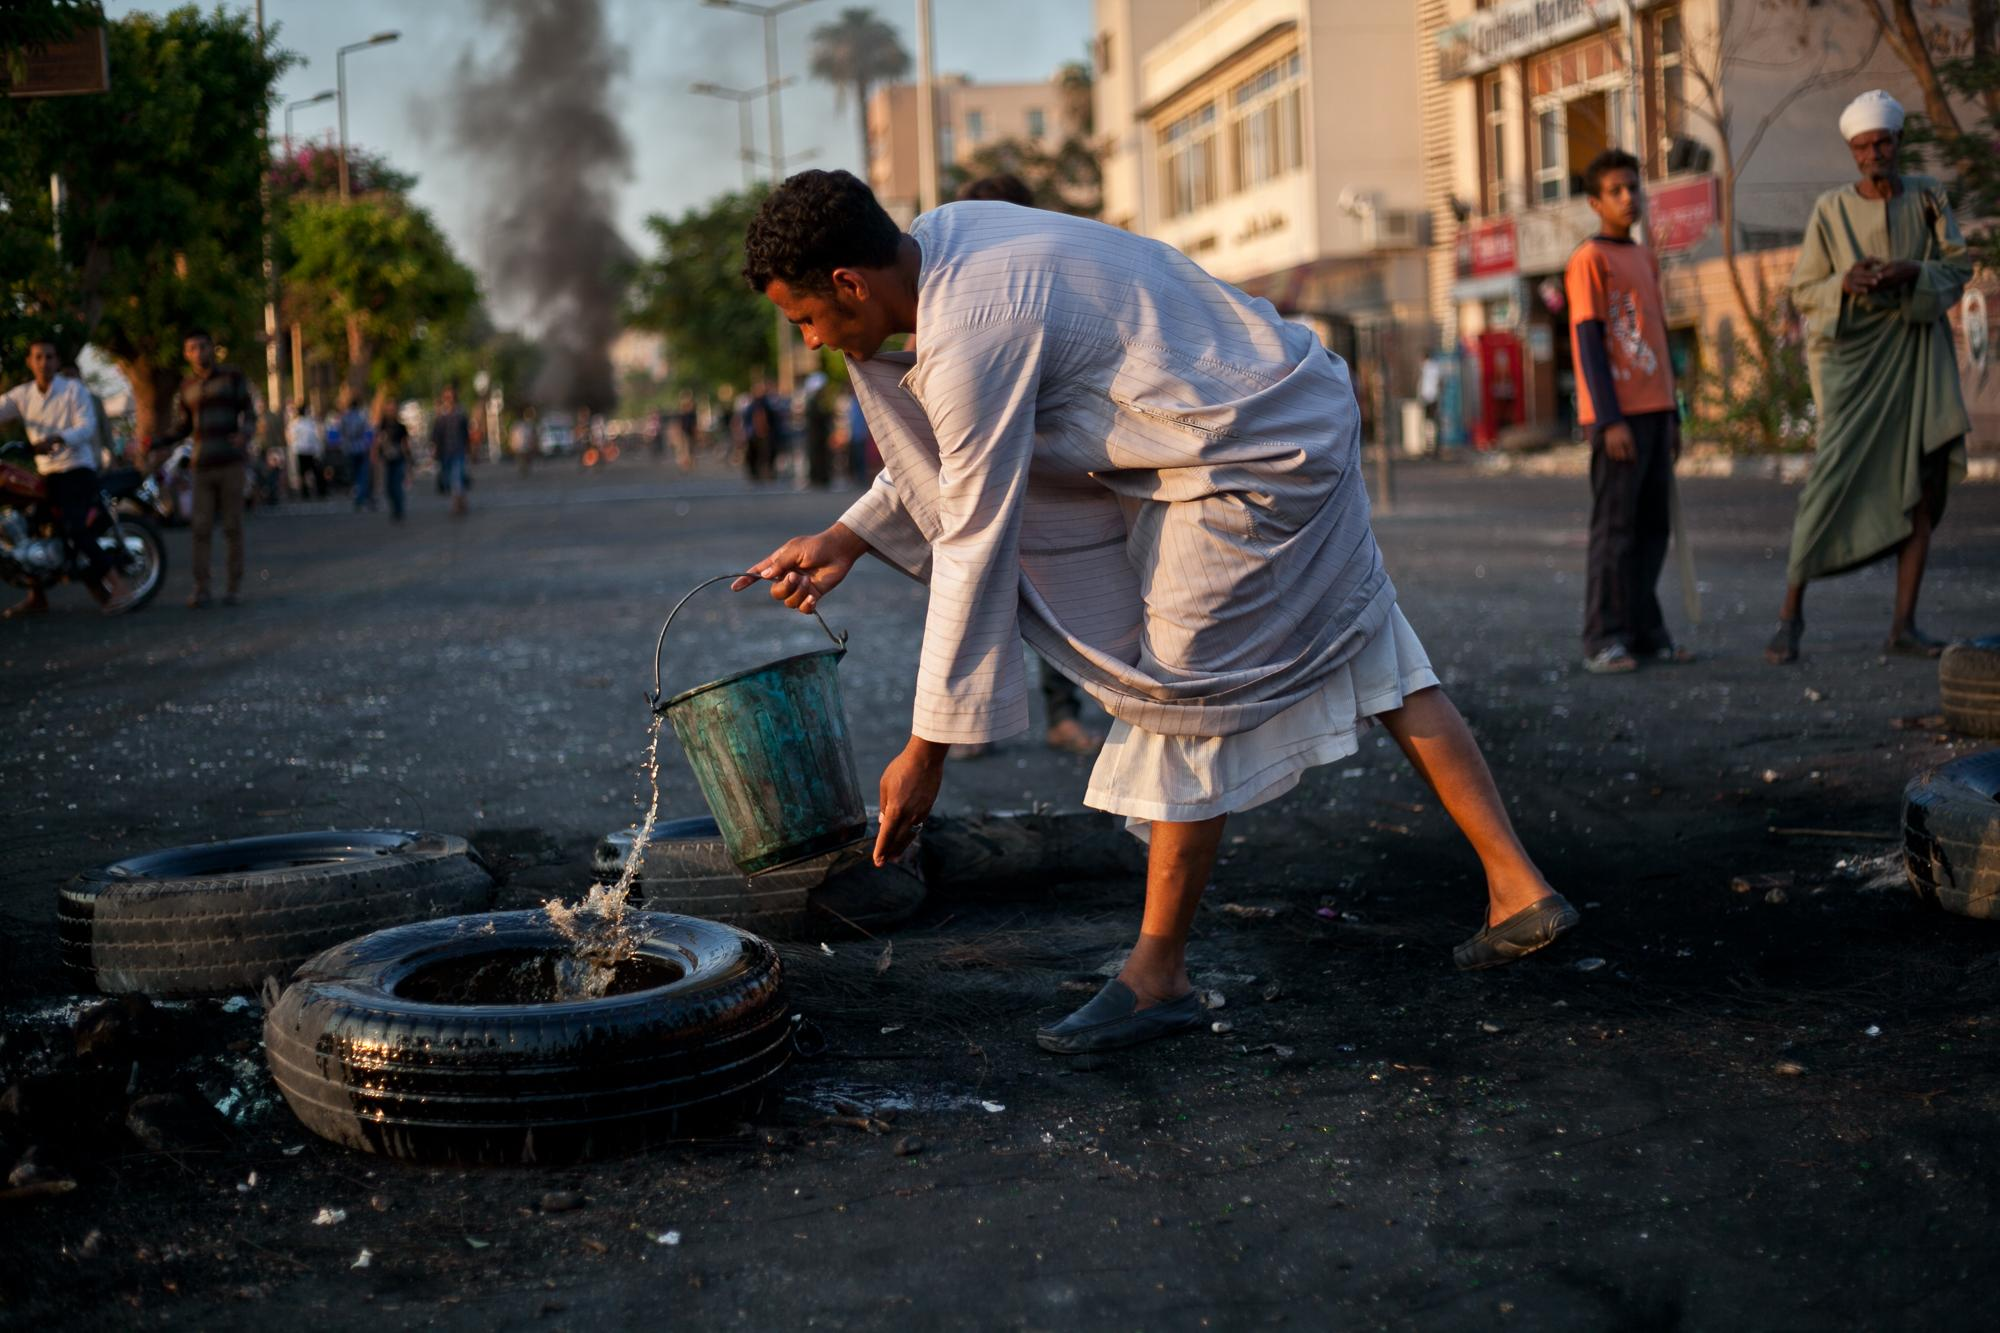 Luxor demonstrators set tires on fire in protest of President Mohamed Morsi's decision to appoint a governor from the Gama'a Islamiyya. The governor resigned but many Luxor residents say they will still protest on June 30th.